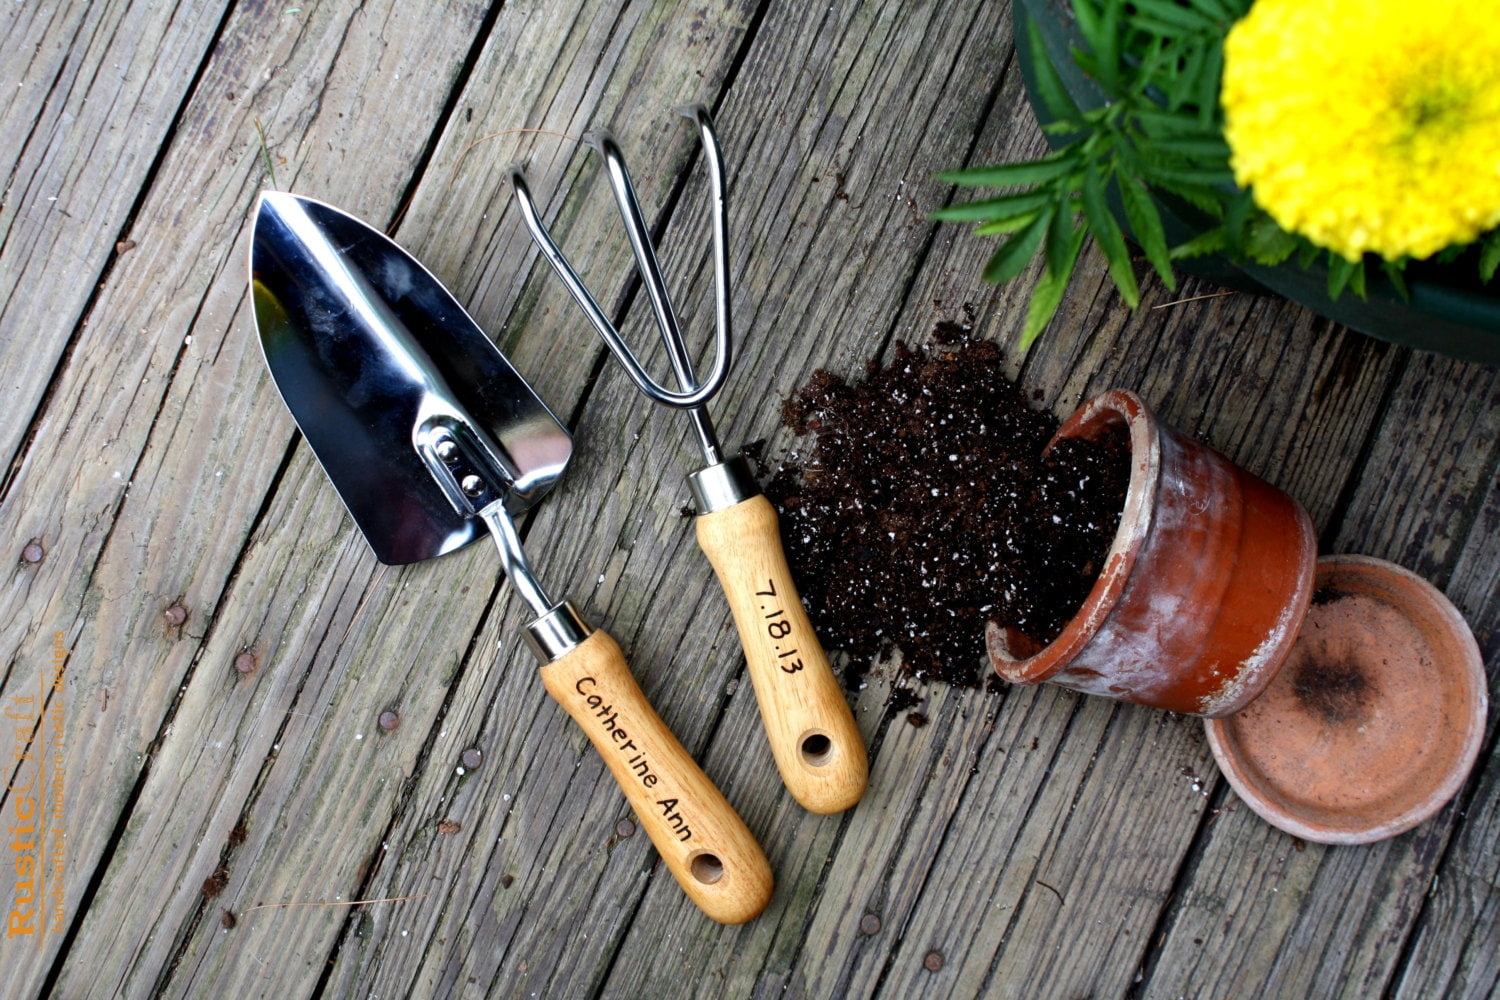 Personalized garden tool set hand trowel short shovel for Gardening tools list and their uses